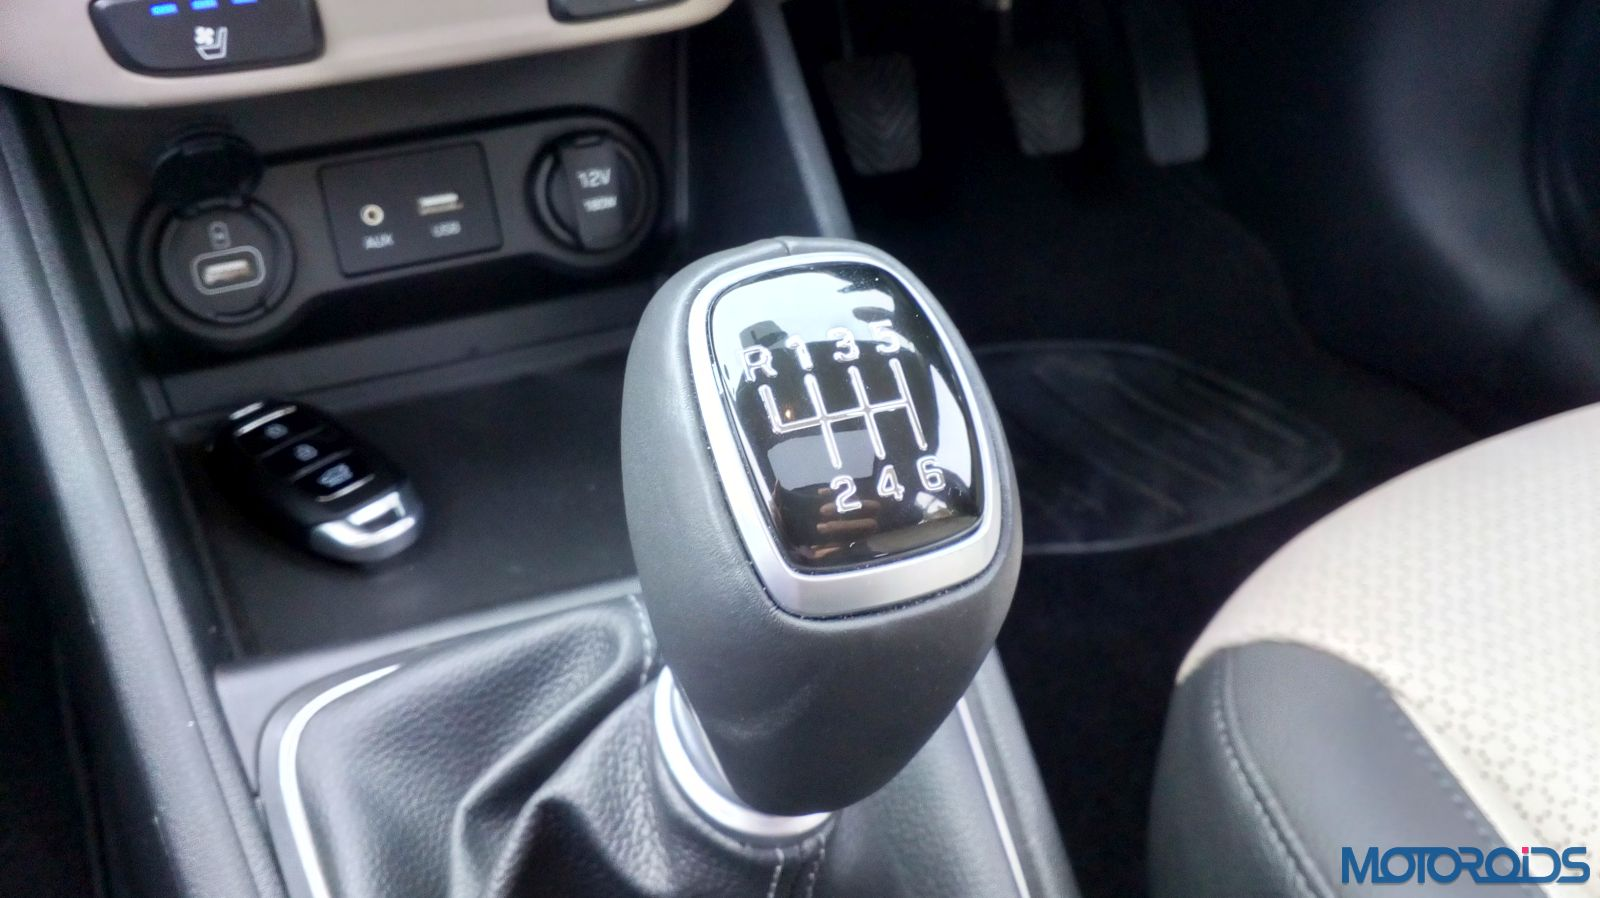 August 28, 2017-New-2017-Next-gen-Hyundai-Verna-manual-gear-lever-32.jpg